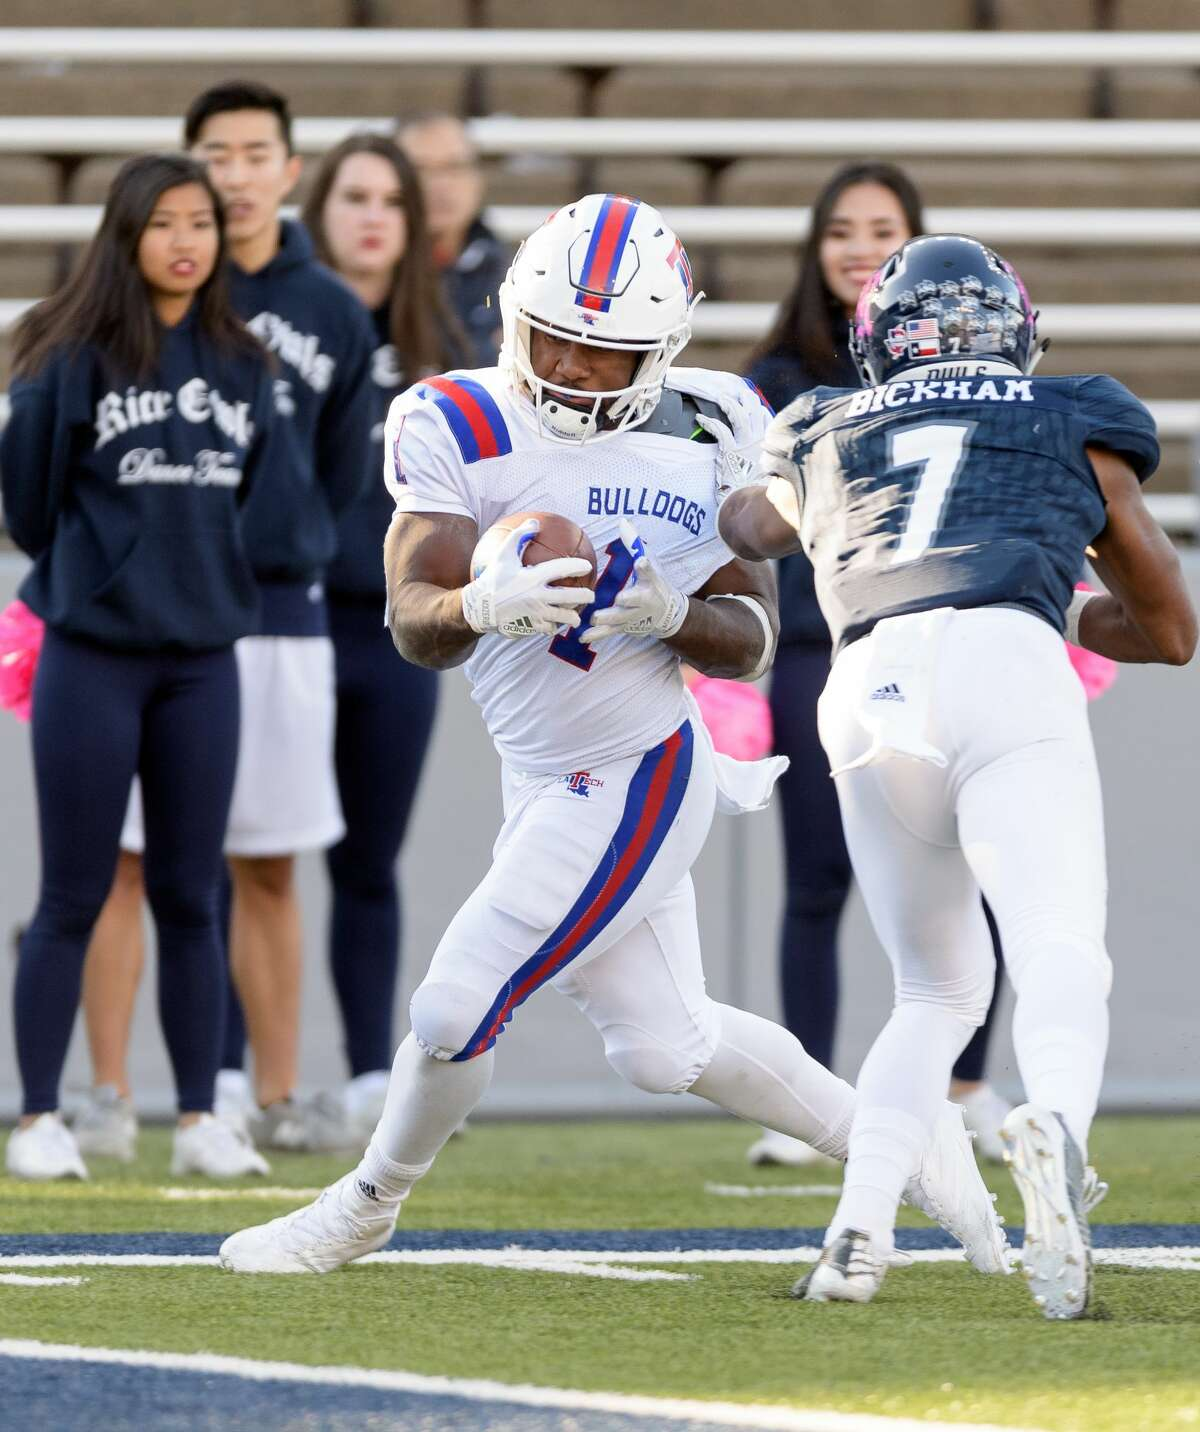 Justin Bickham (7) of the Rice Owls knocks Boston Scott (1) of the Louisiana Tech Bulldogs out of bounds just before the end zone in the second half in a Conference USA football game on Saturday, October 28, 2017 at Rice Stadium in Houston Texas.